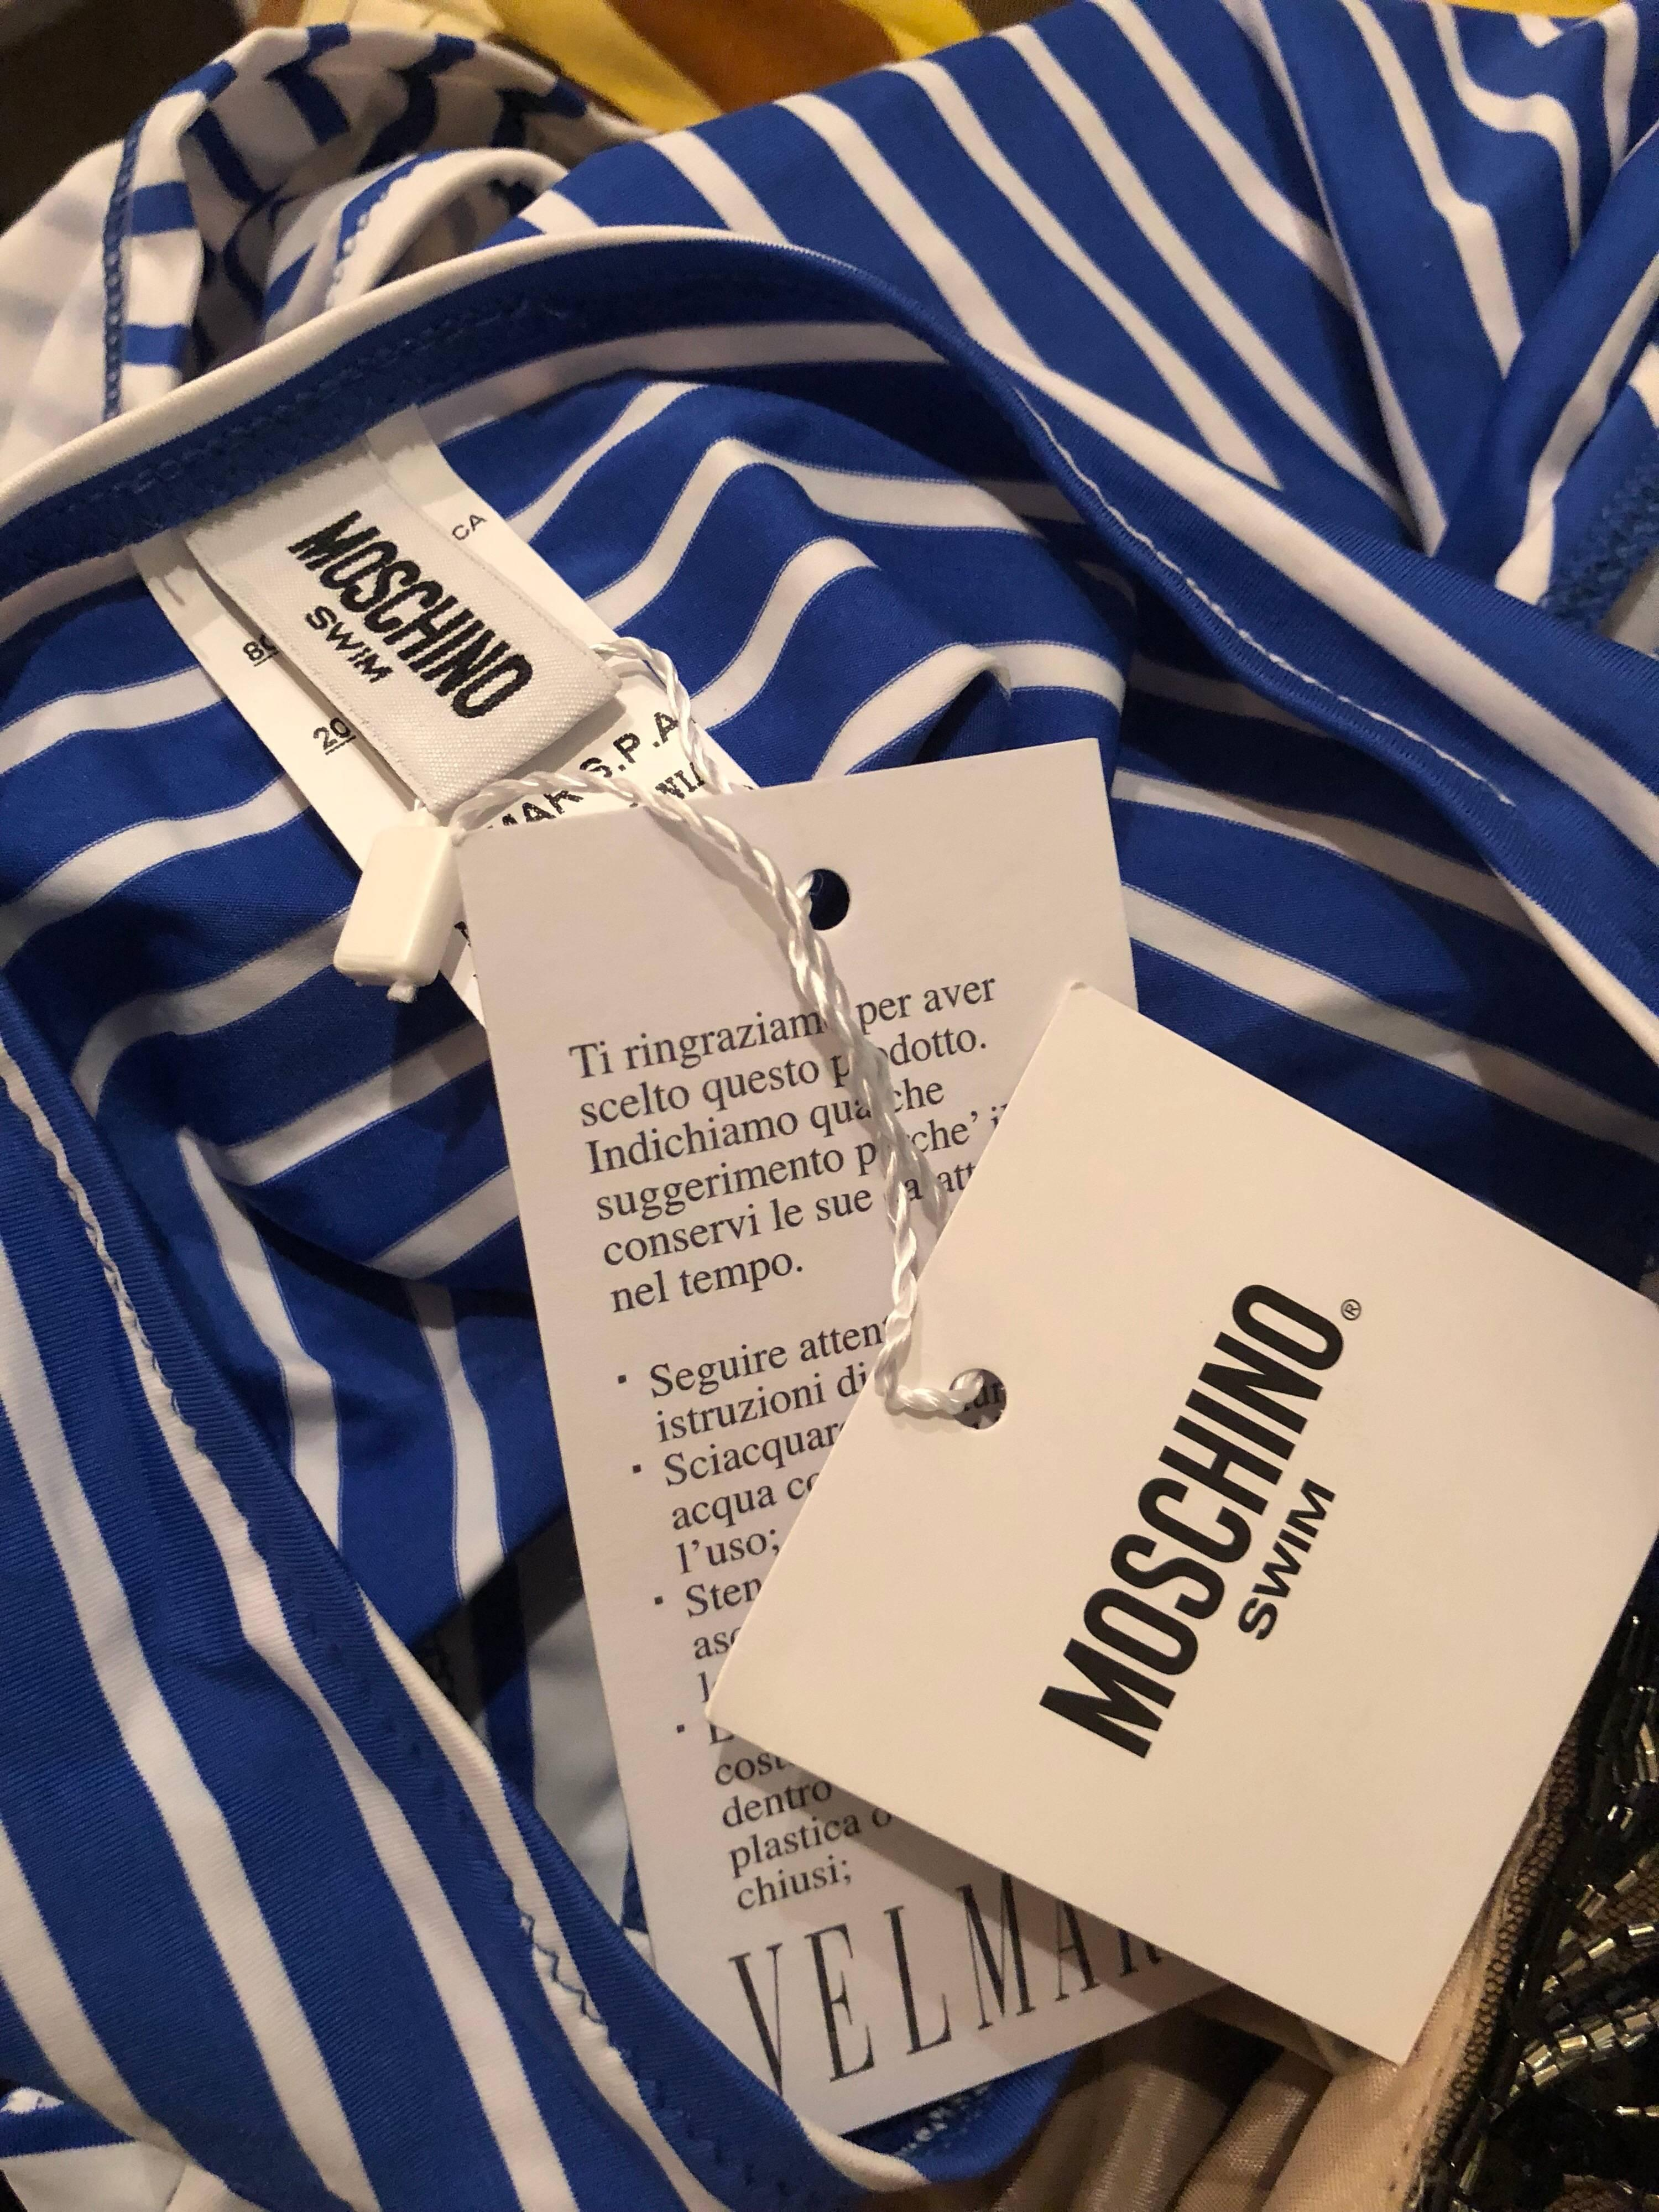 35ee50c1f8f88 NWT Moschino Blue White Striped Nautical Sexy Cut Out Monkini One Piece  Swimsuit For Sale at 1stdibs